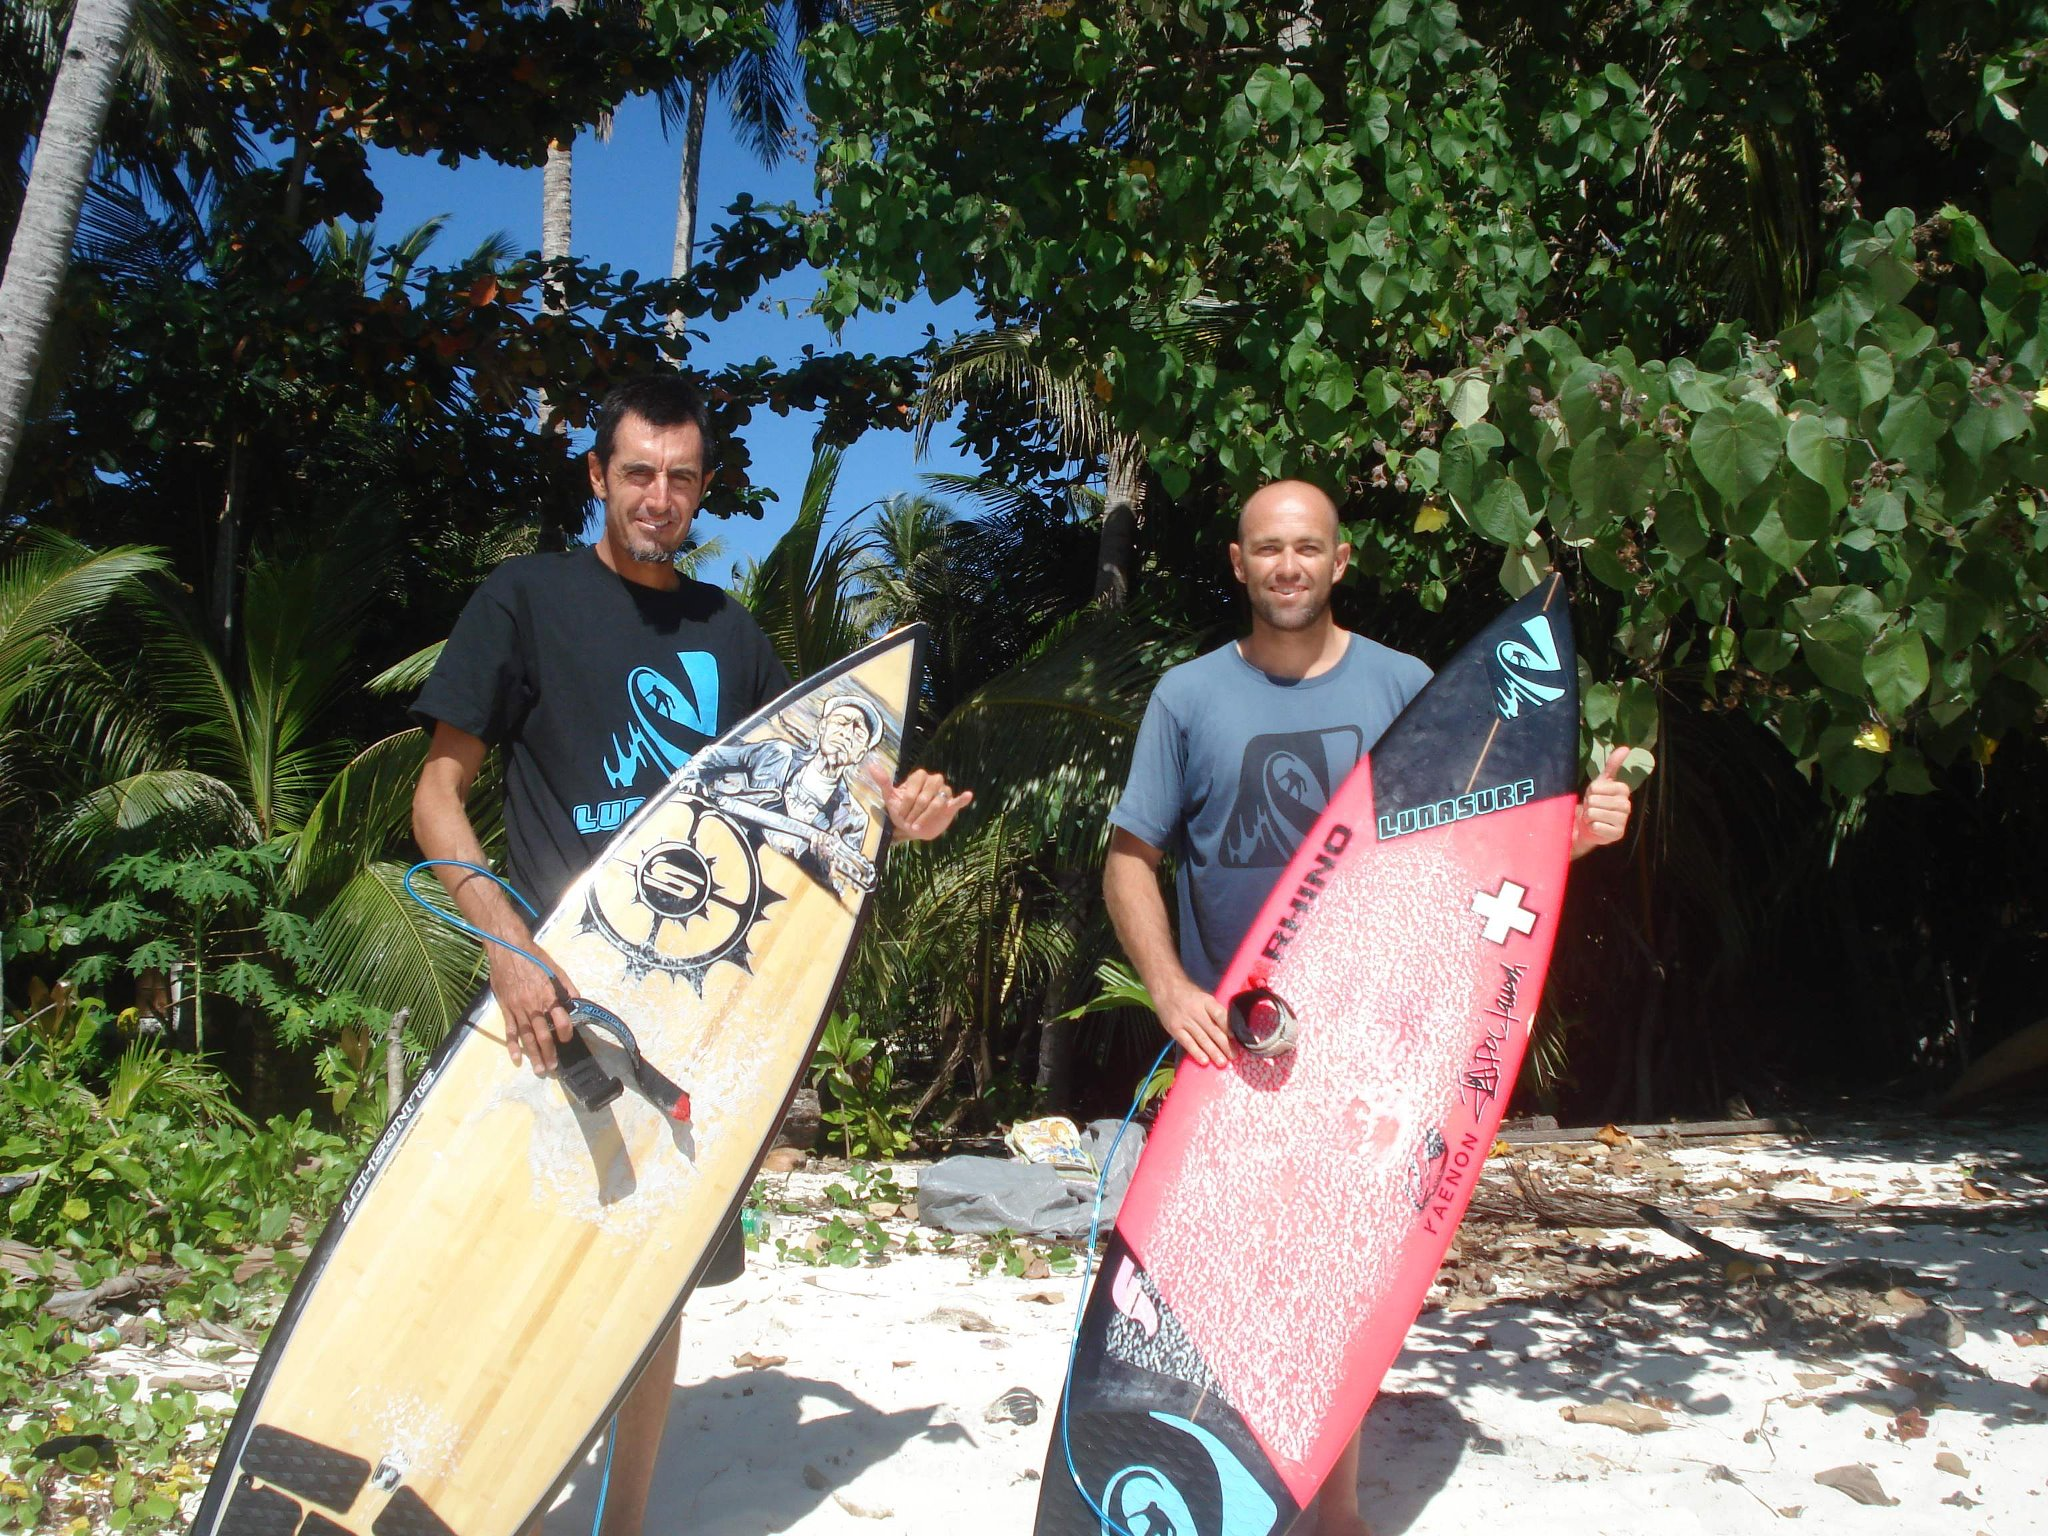 phil-goodrich-and-ian-battrick-mentawai-indo-lunasurf-.jpg